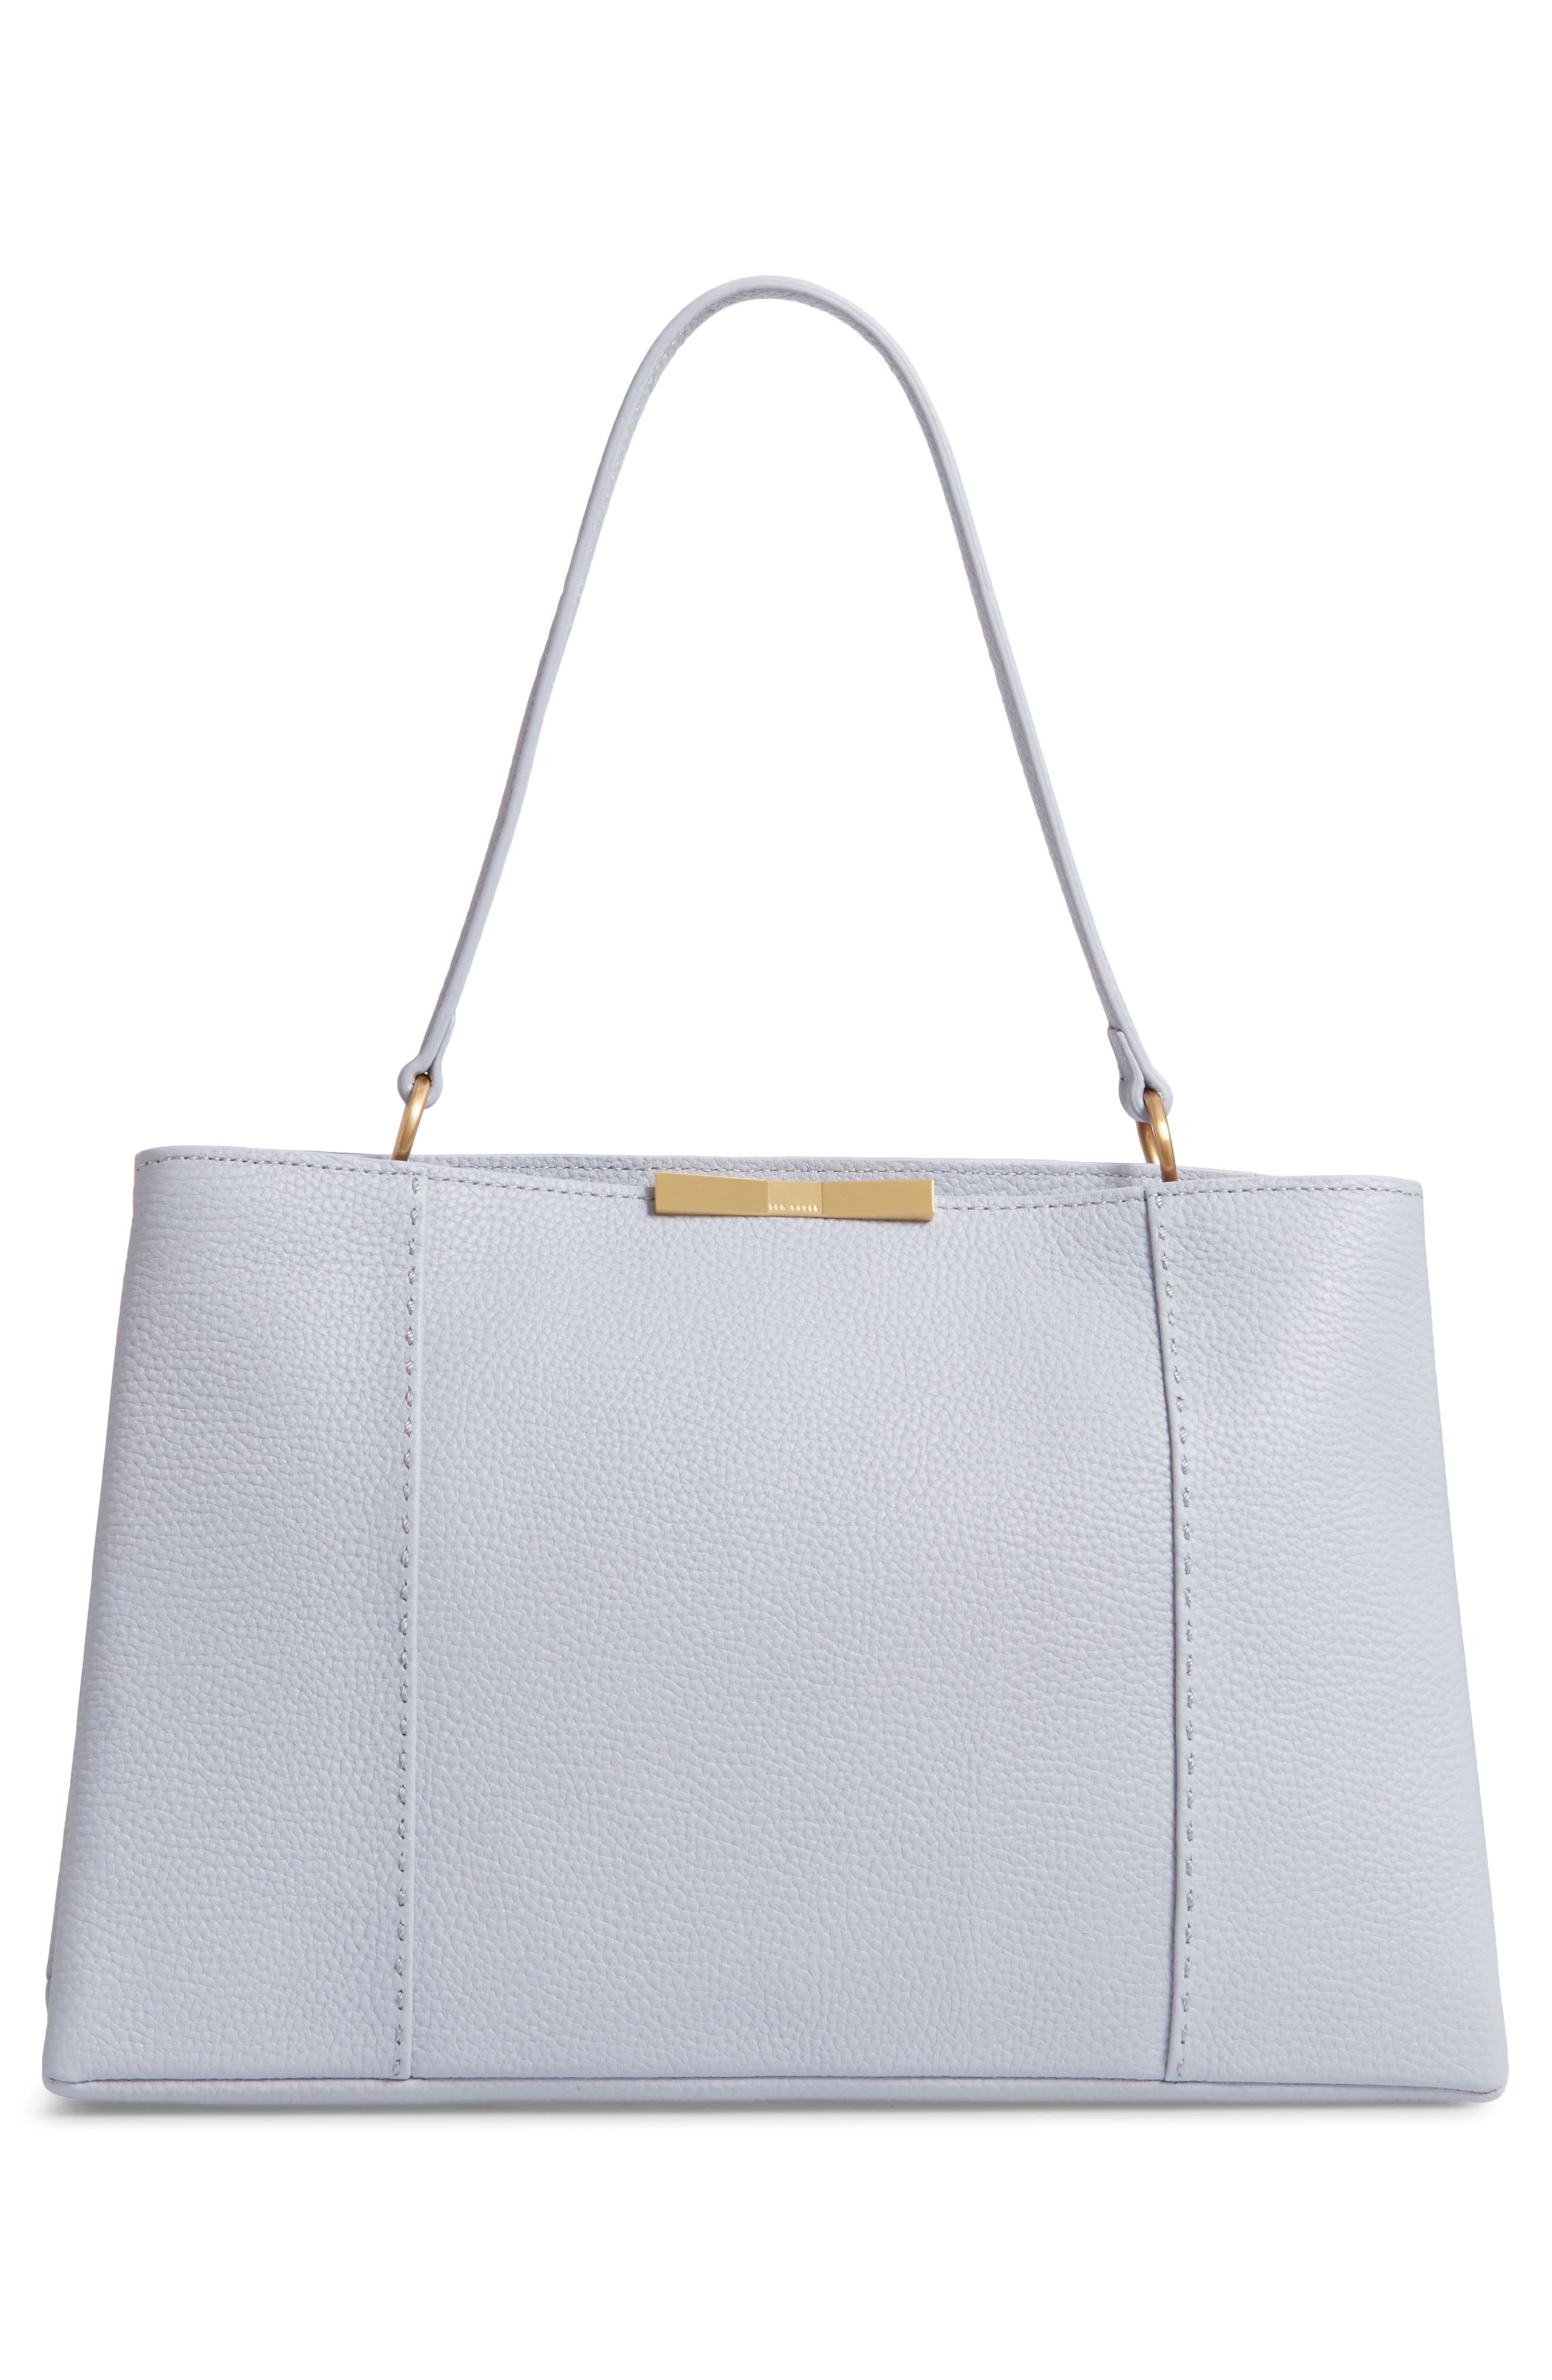 TED BAKER LONDON, Camieli Bow Tote, Alternate thumbnail 4, color, PL-BLUE